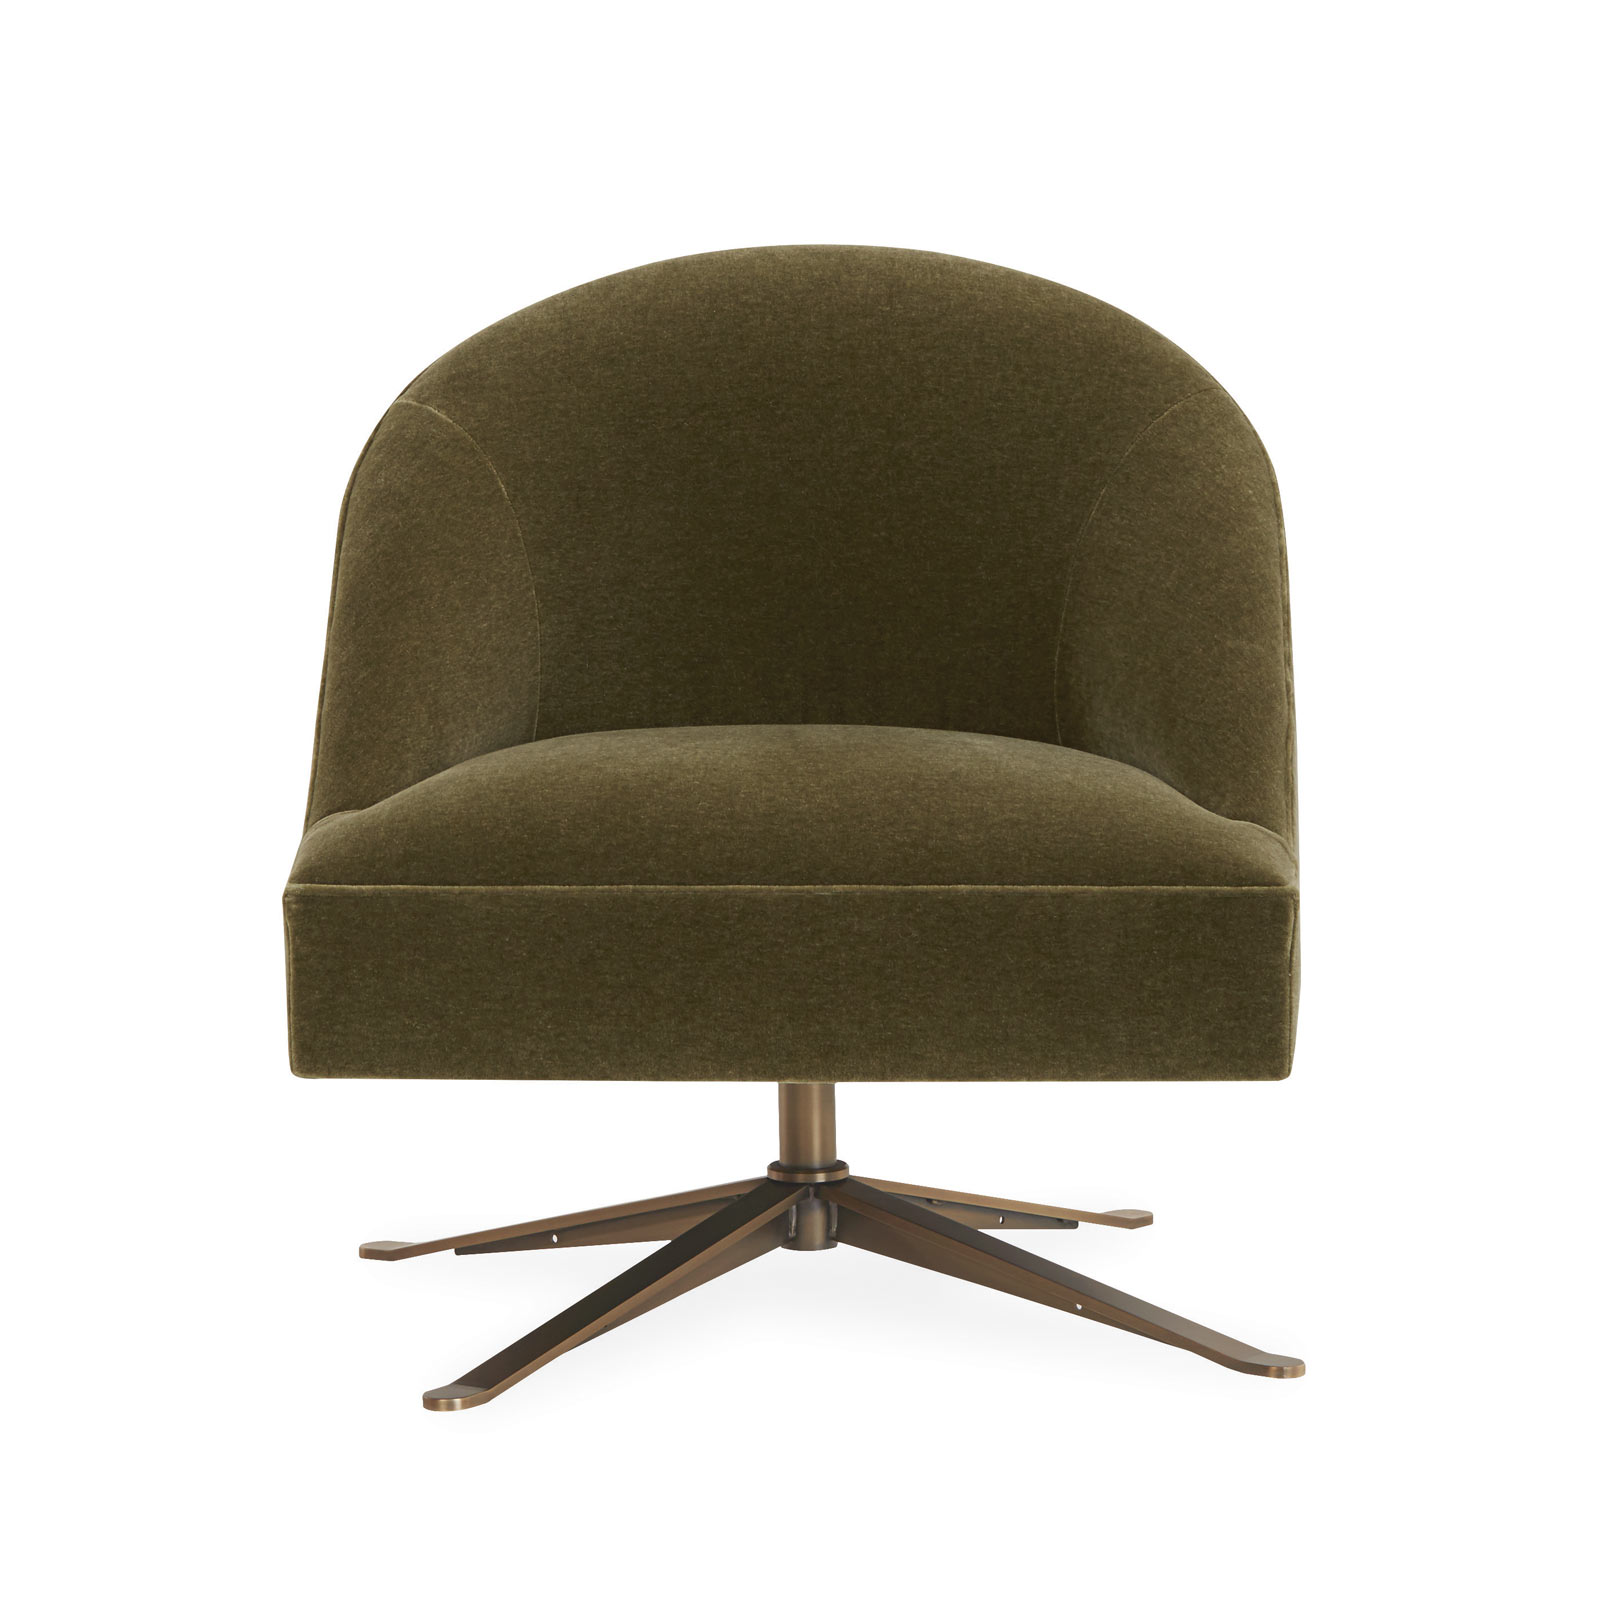 5909_Swivel_Chair_Lee_head-on.jpg